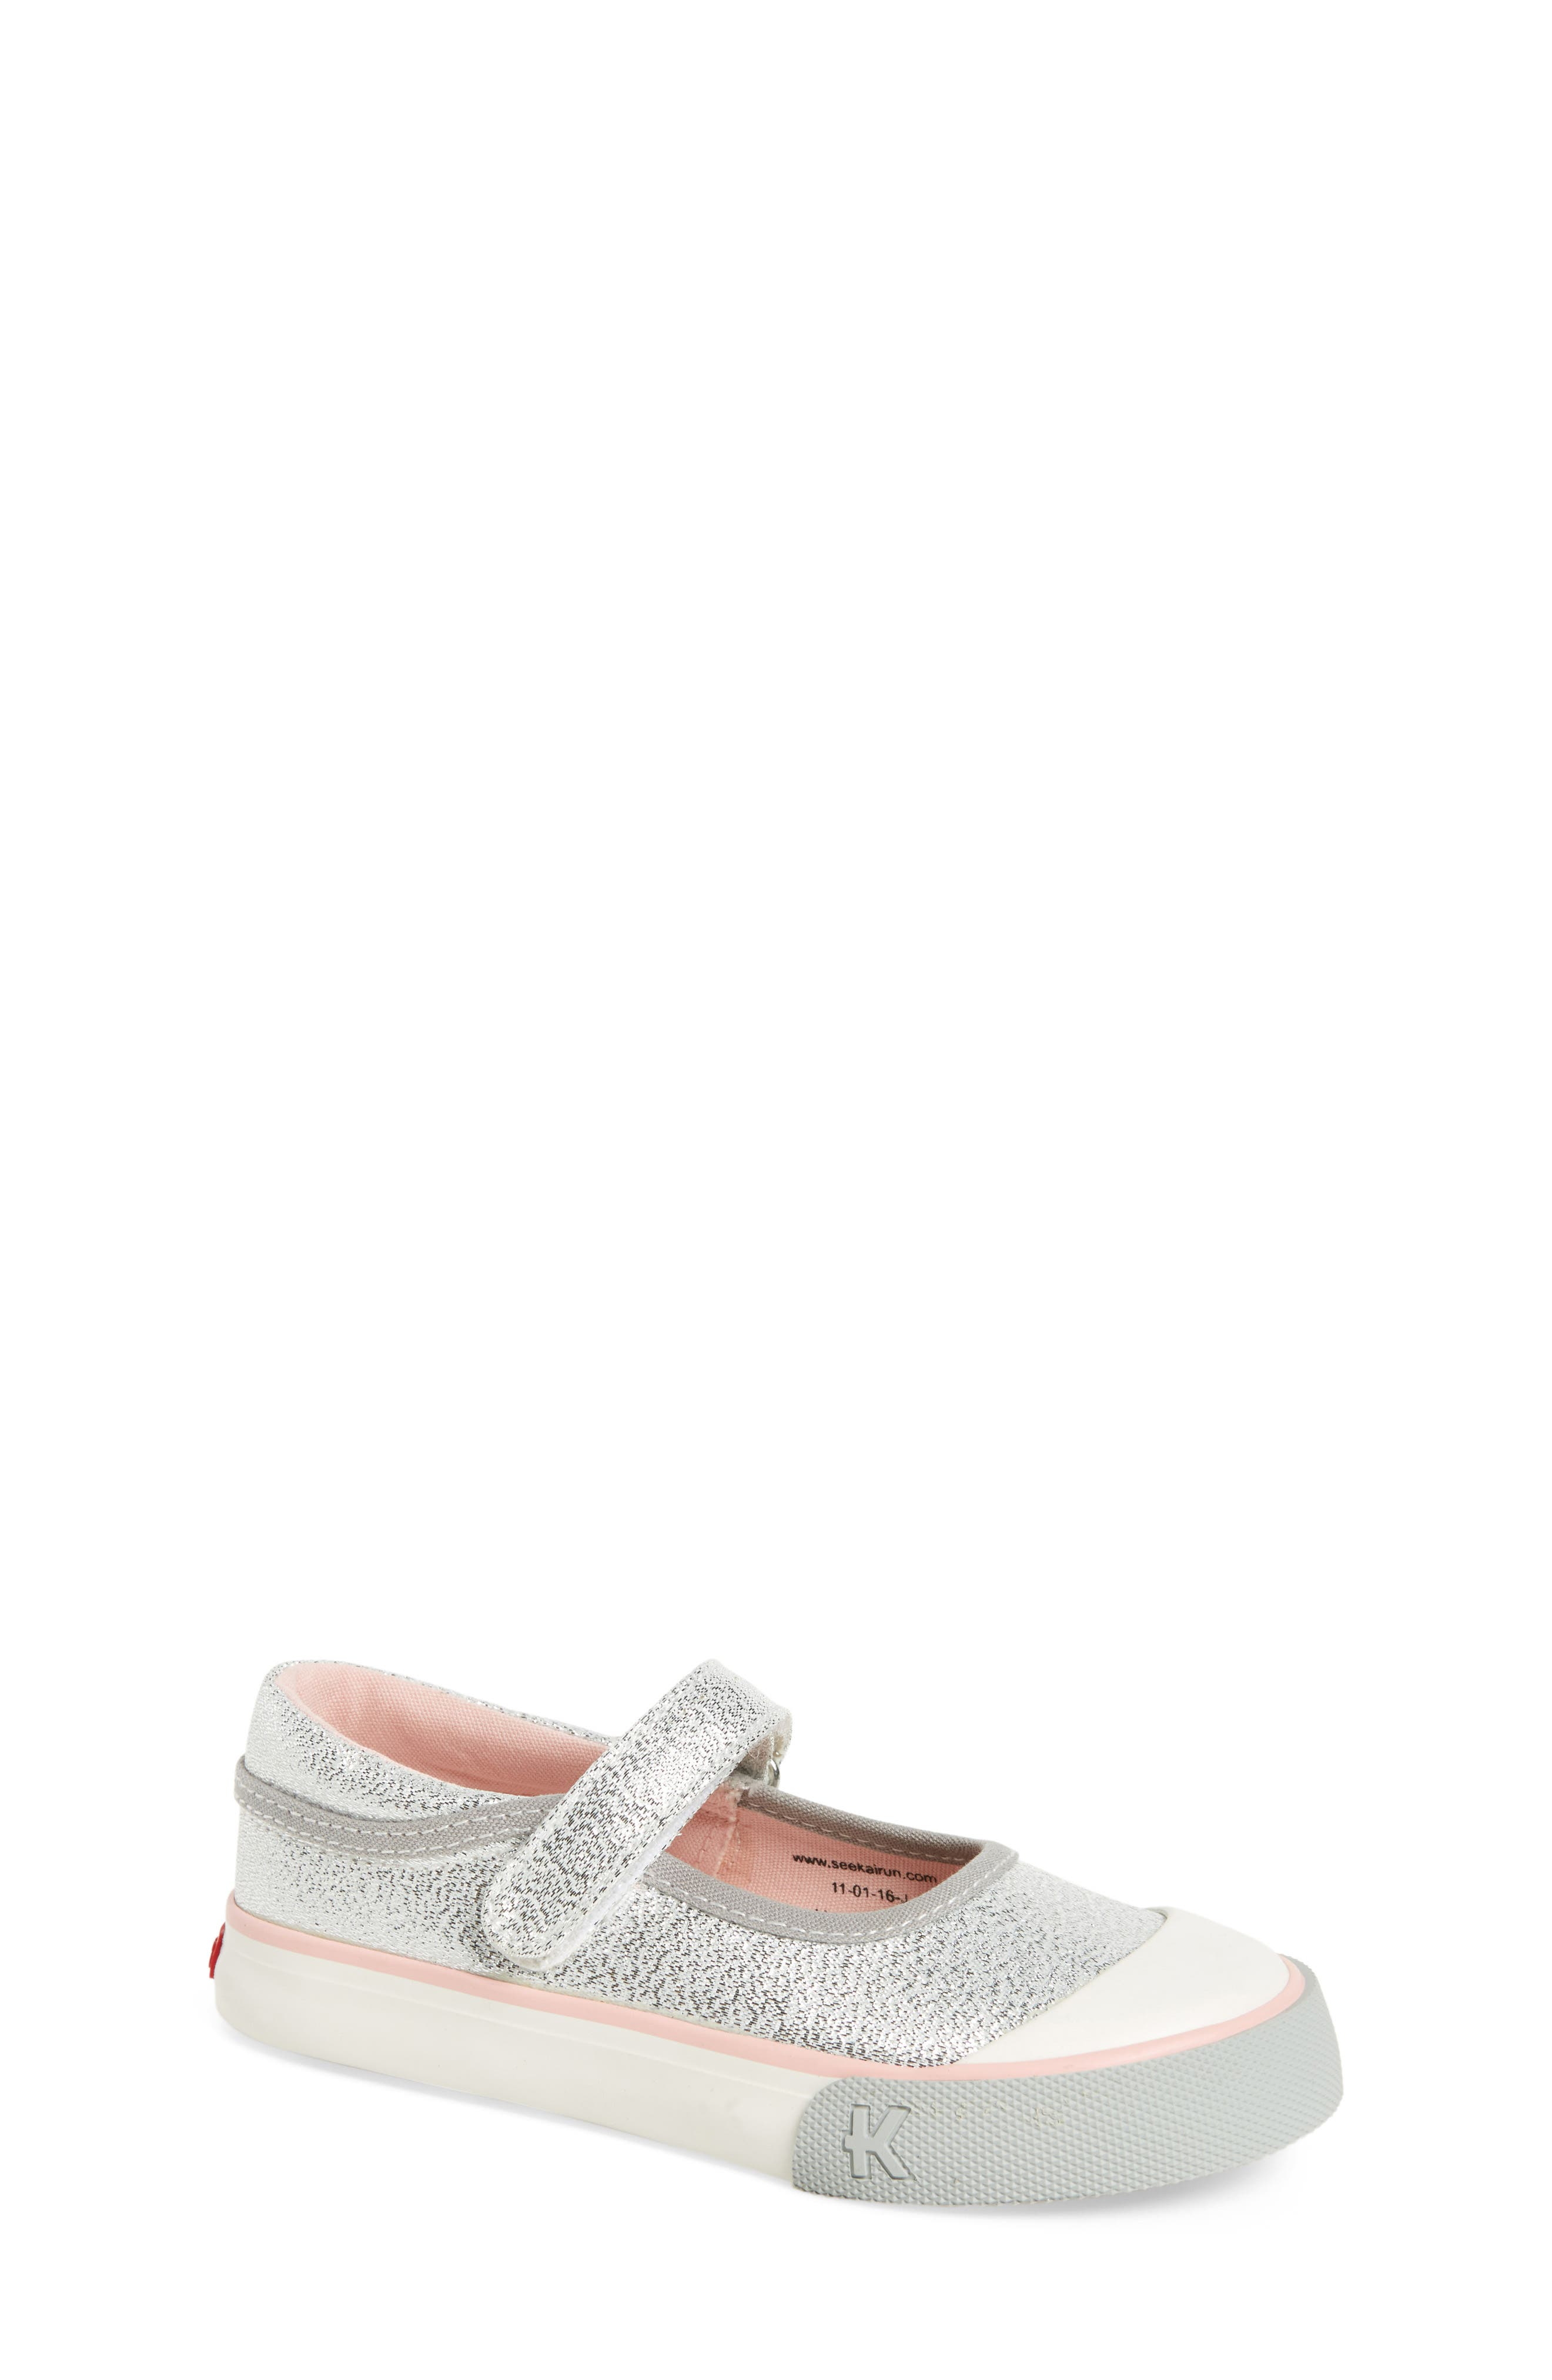 'Marie' Mary Jane Sneaker,                         Main,                         color, Silver Glitter